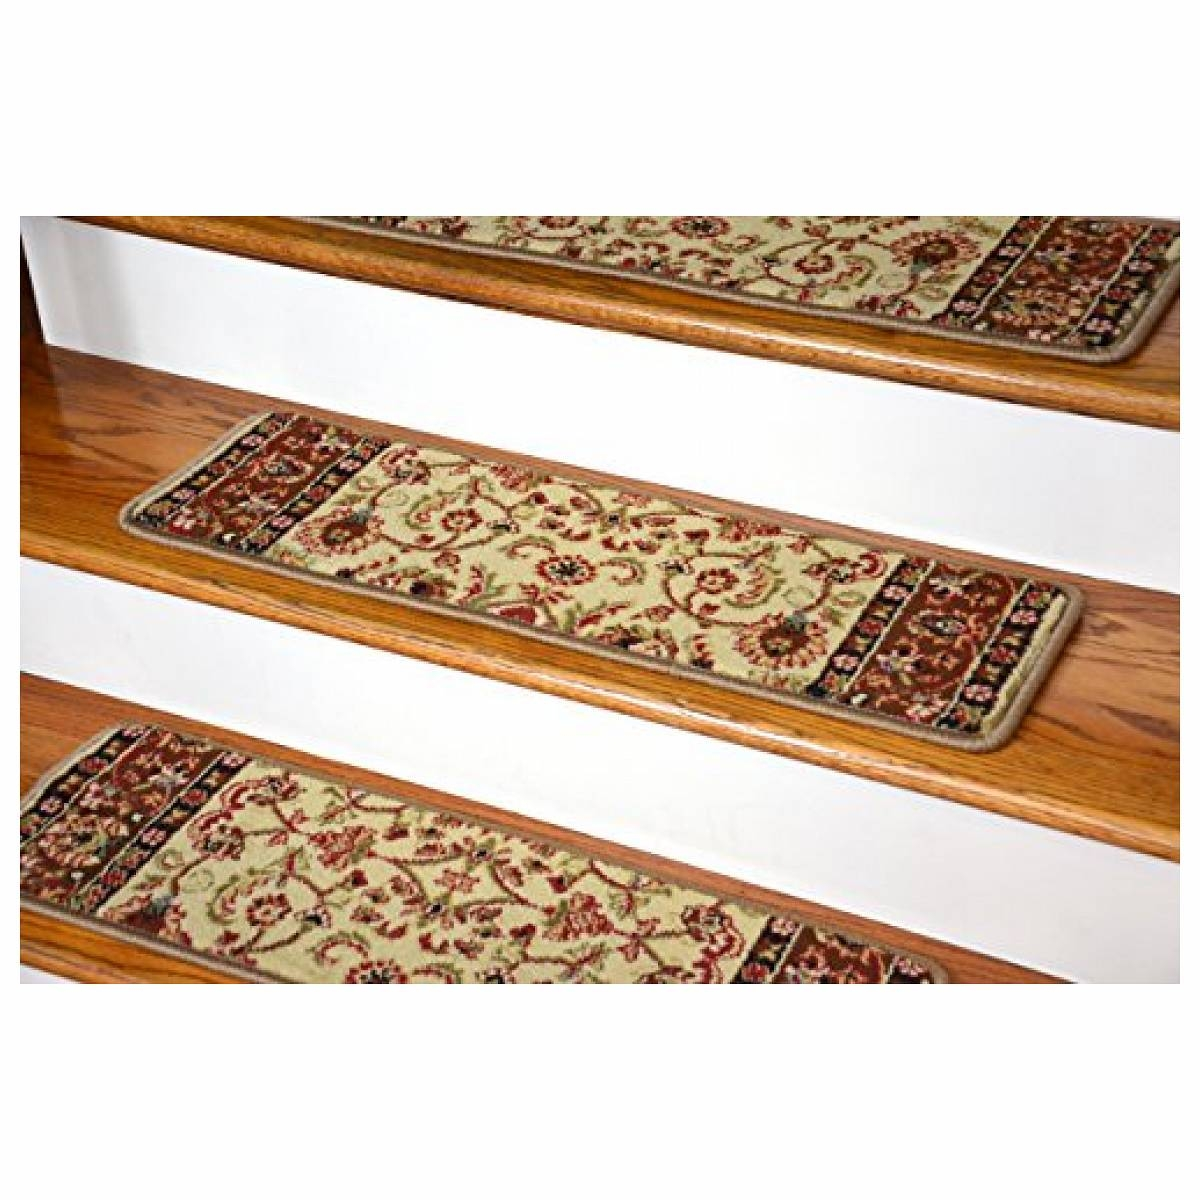 Carpet Stair Tread Covers Non Slip Stair Tread Covers Ideas In Stair Tread Rug Covers (#2 of 20)